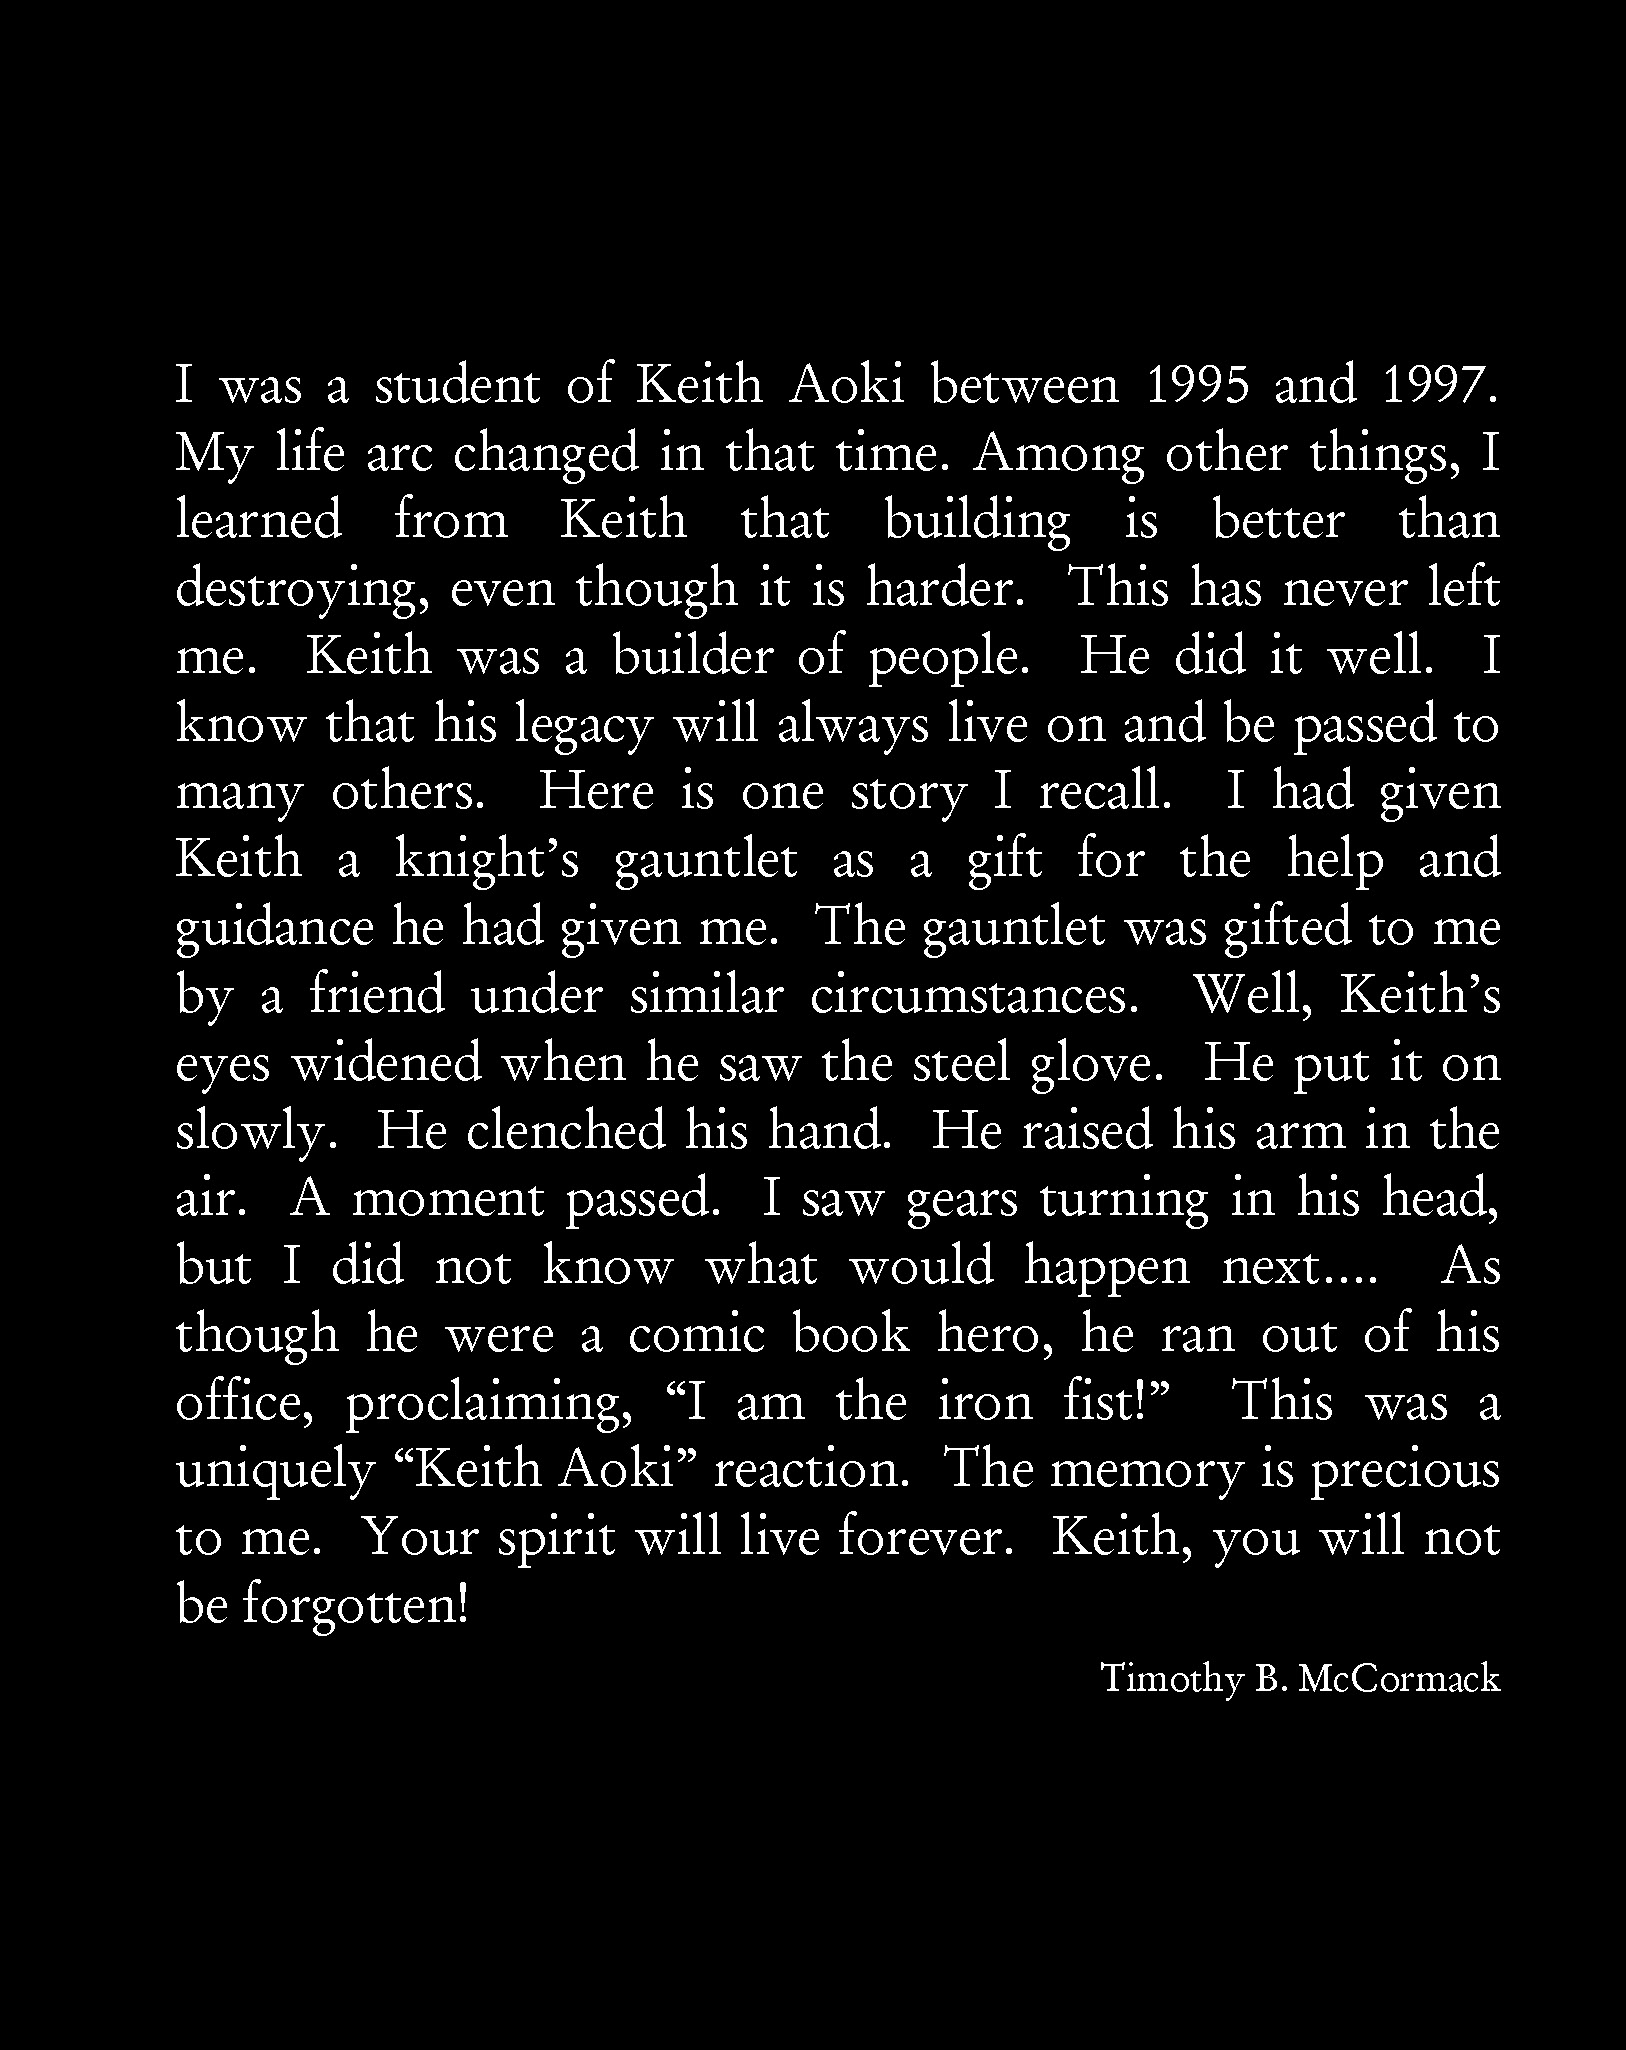 keithaokiremembrance_page_63